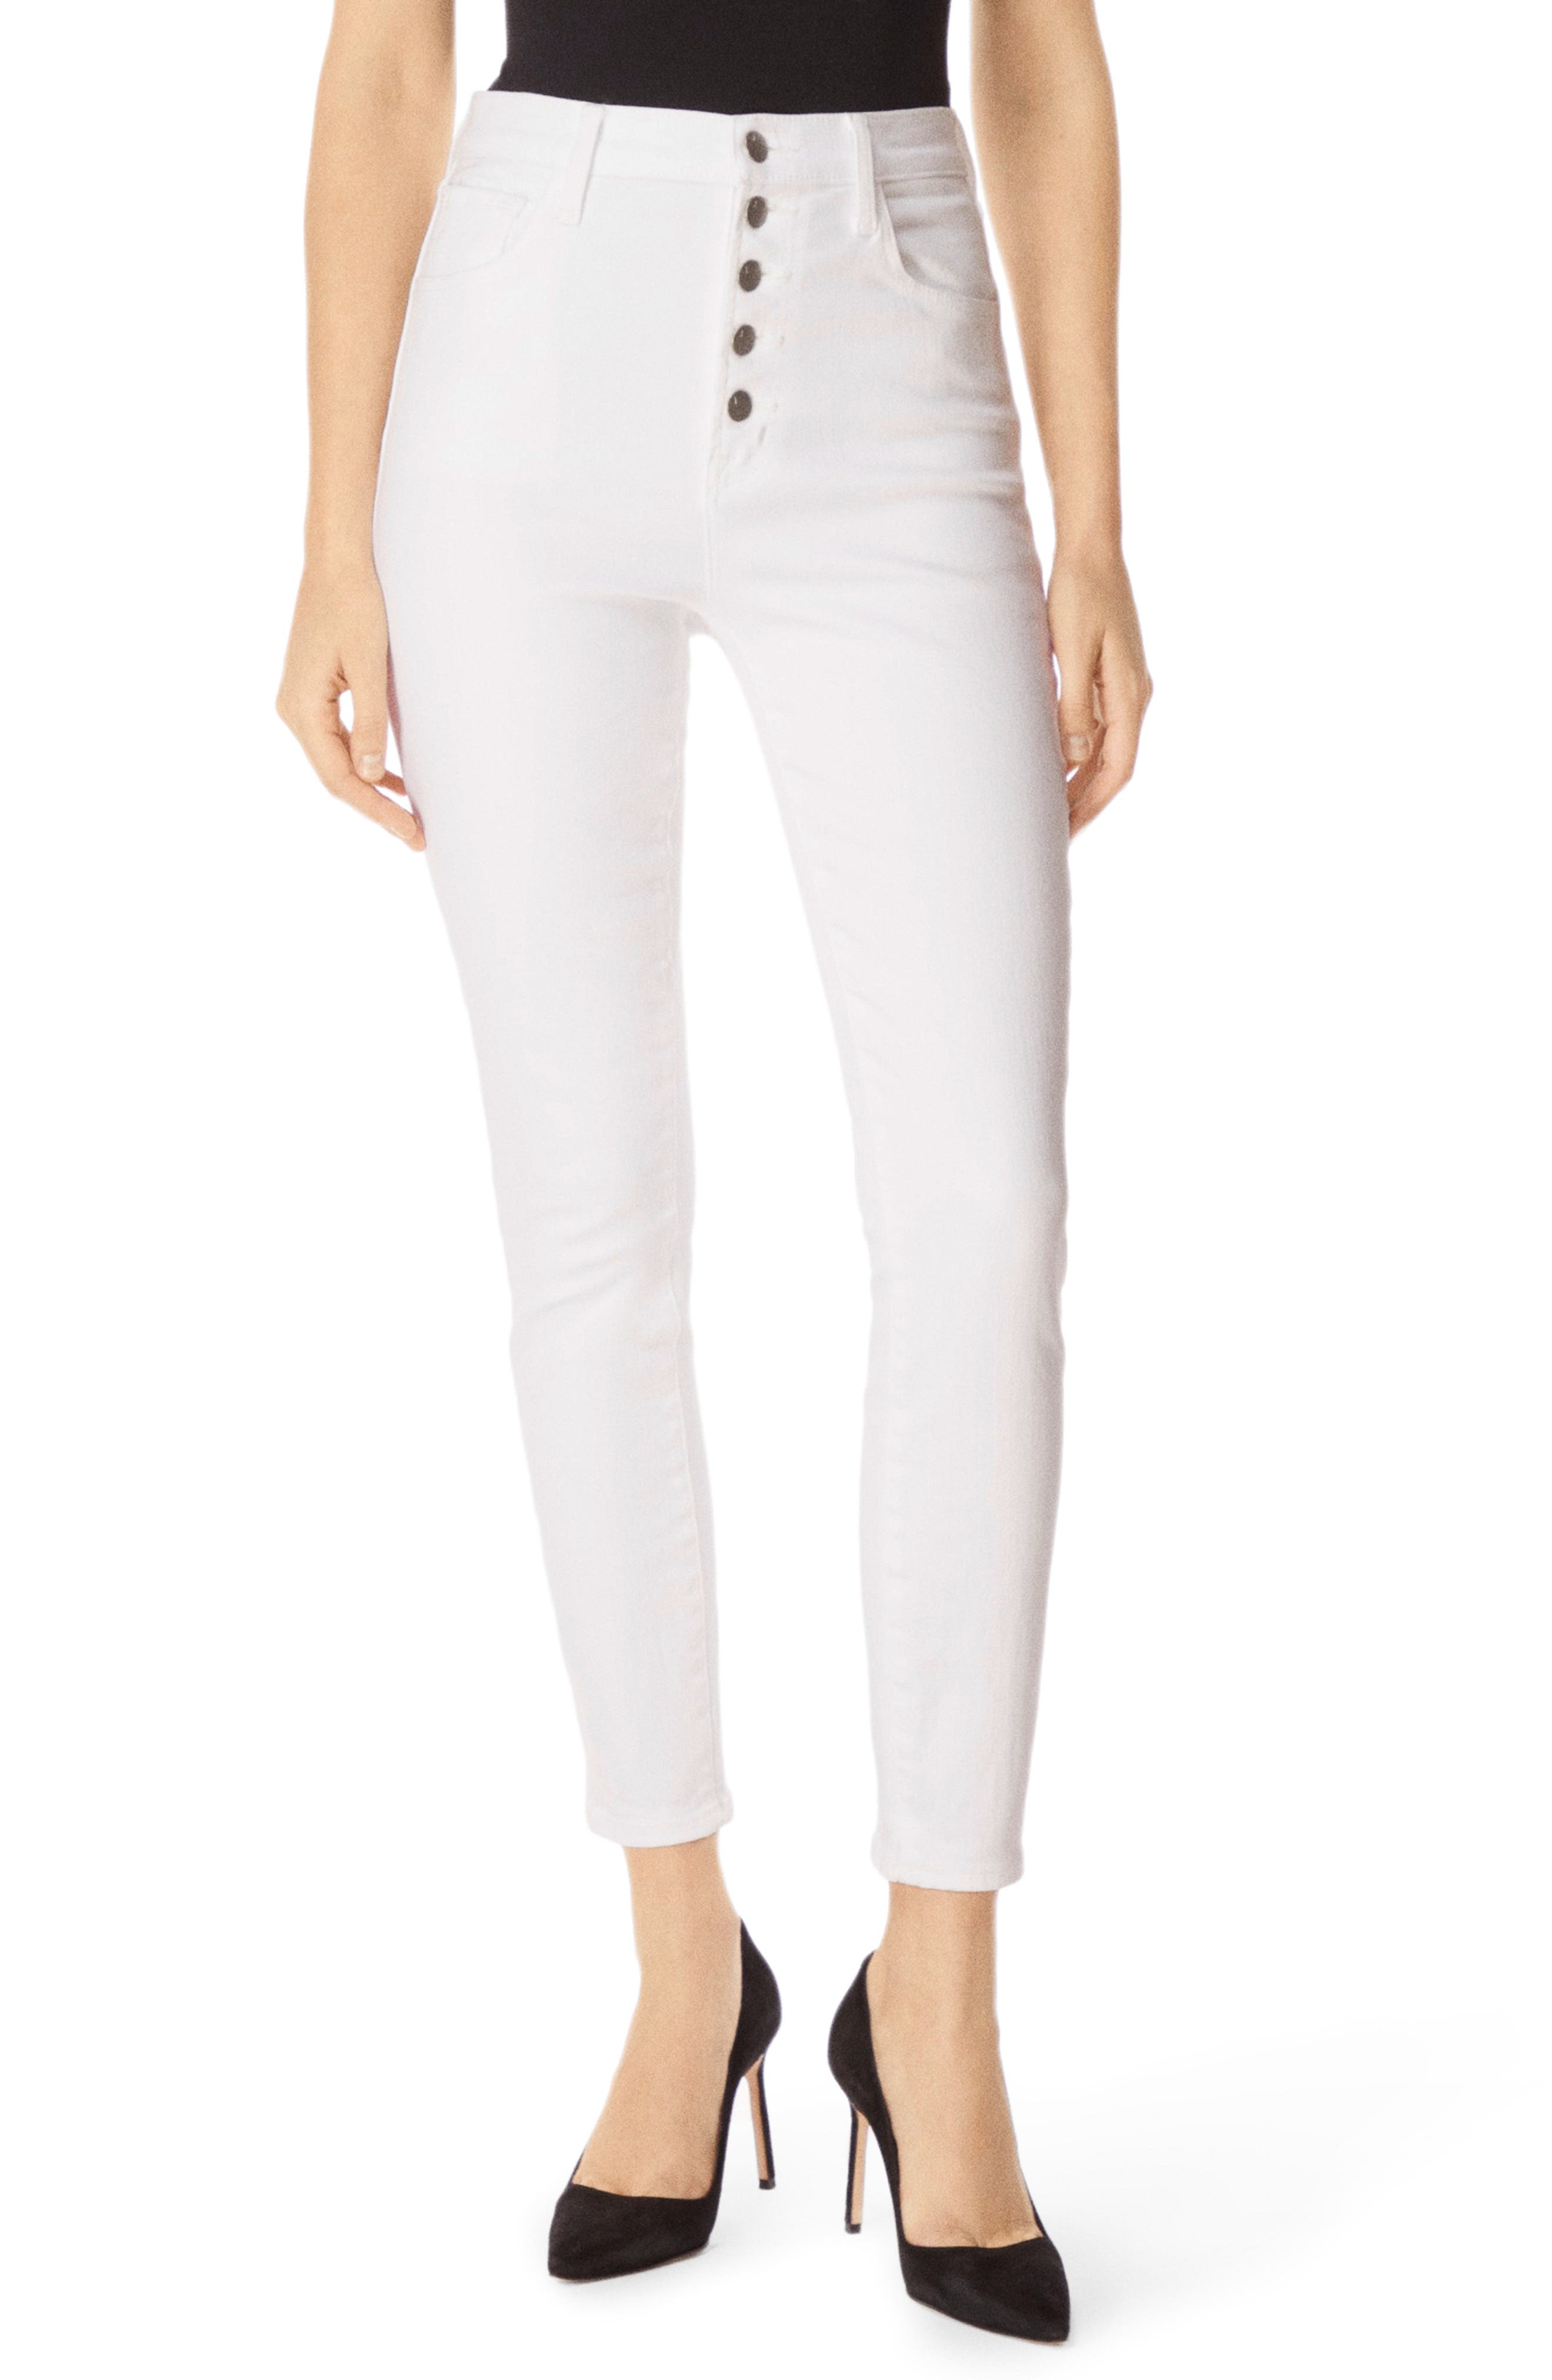 Lillie High Waist Ankle Skinny Jeans, Main, color, WHITE